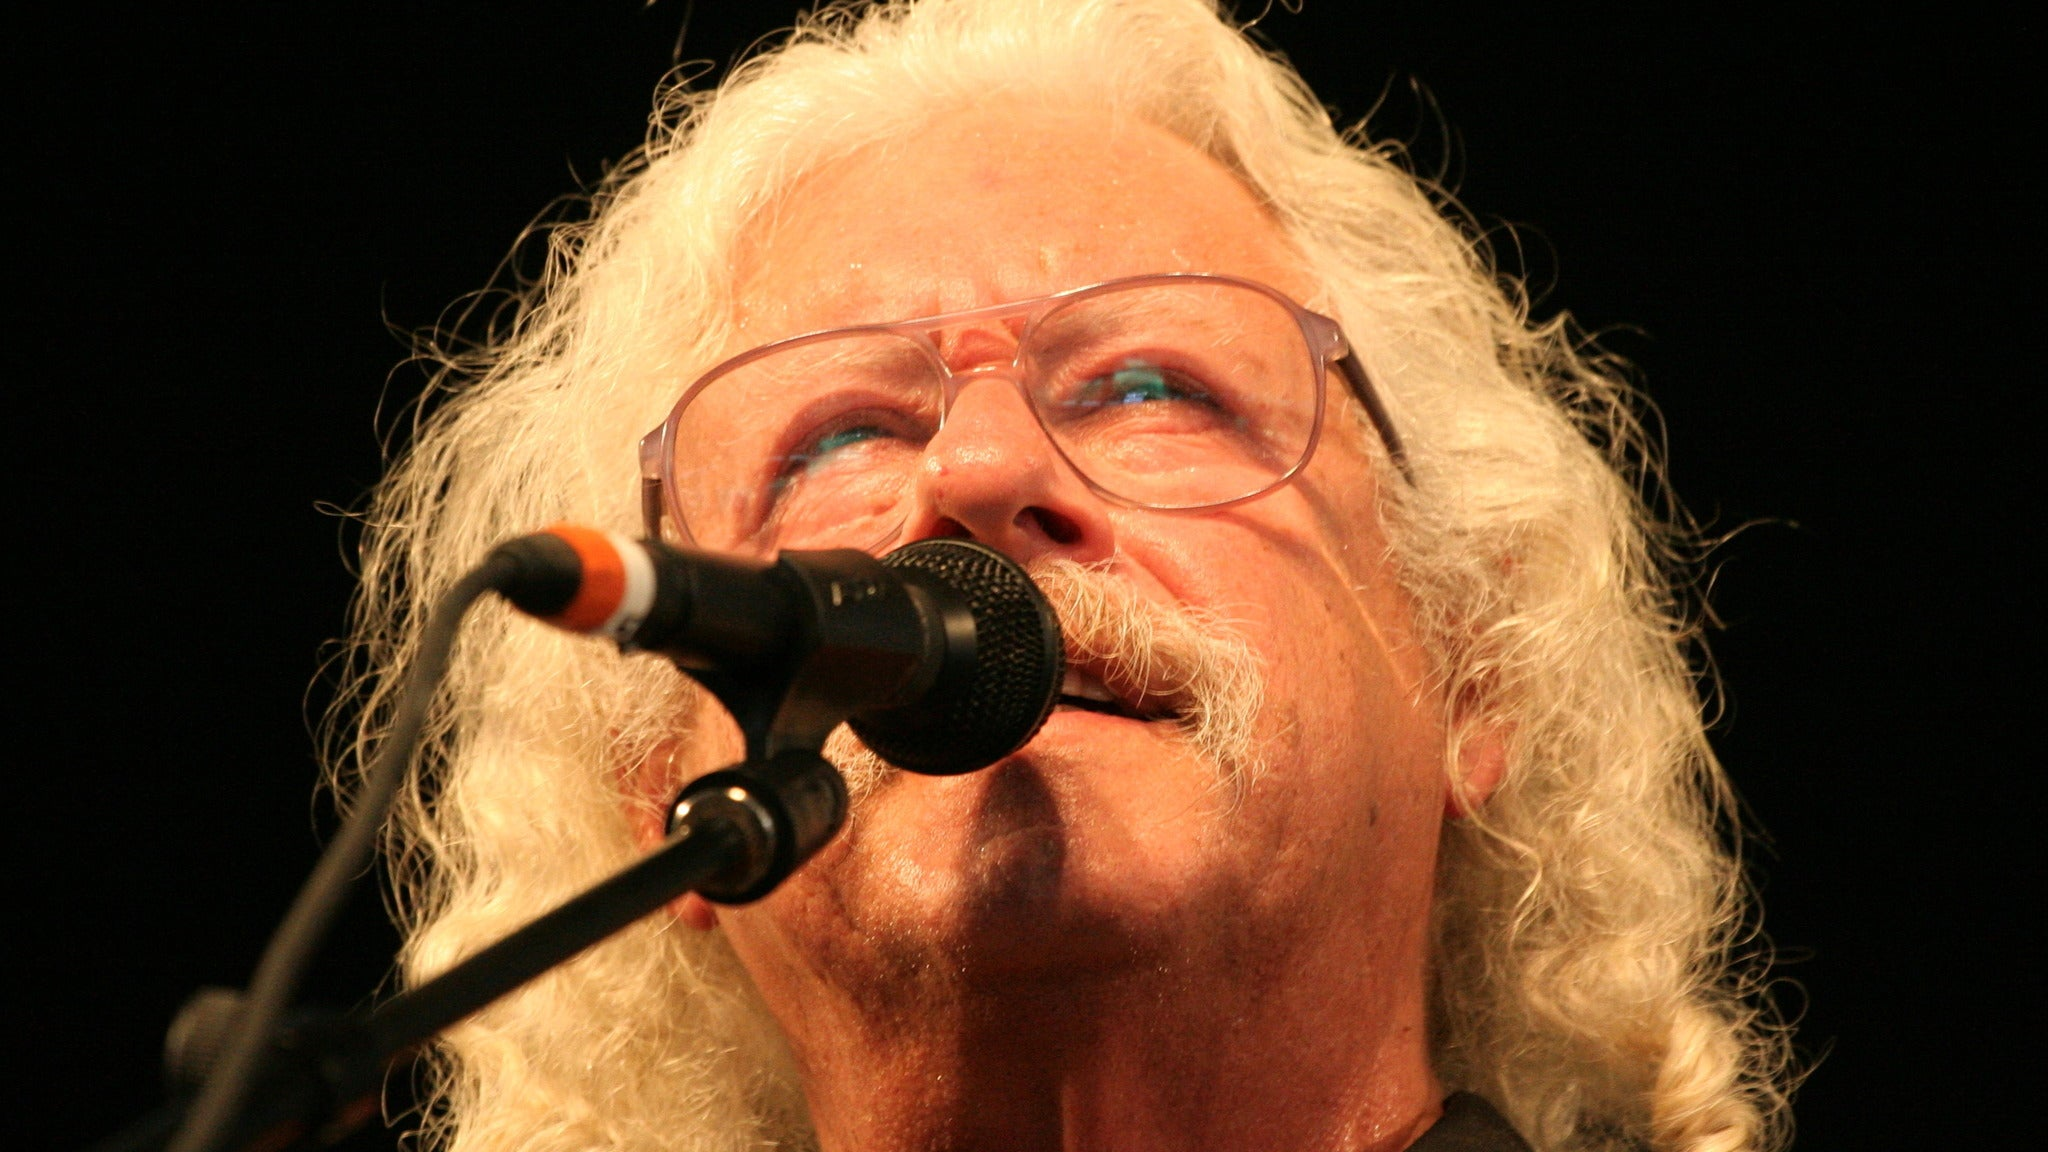 Arlo Guthrie at Bankhead Theater - Livermoor Valley PAC